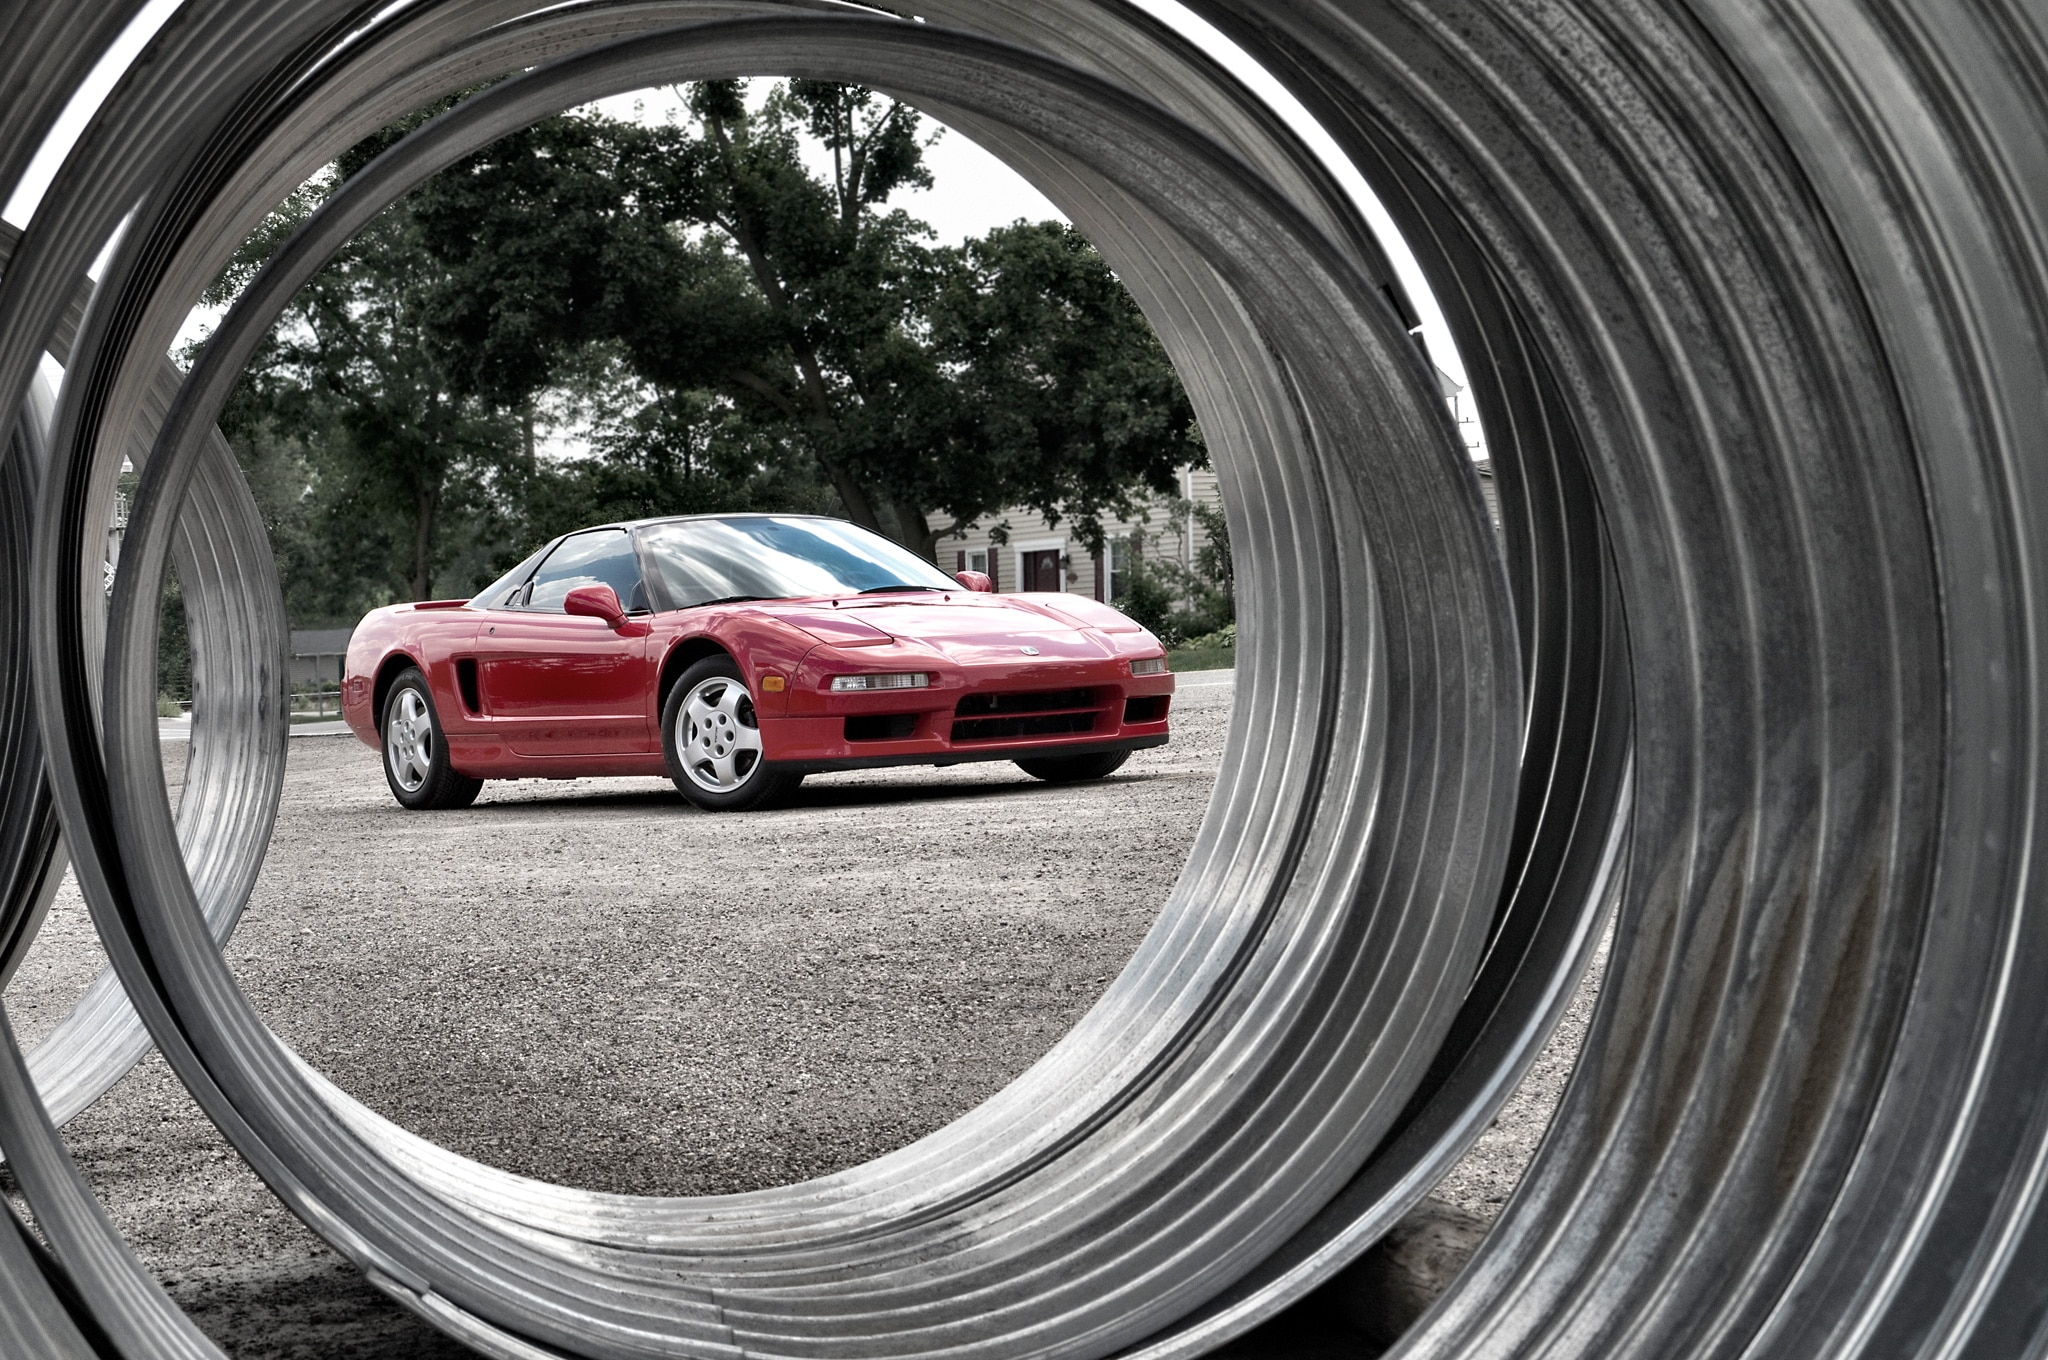 1991 Acura NSX Front Three Quarters View Through Piping1